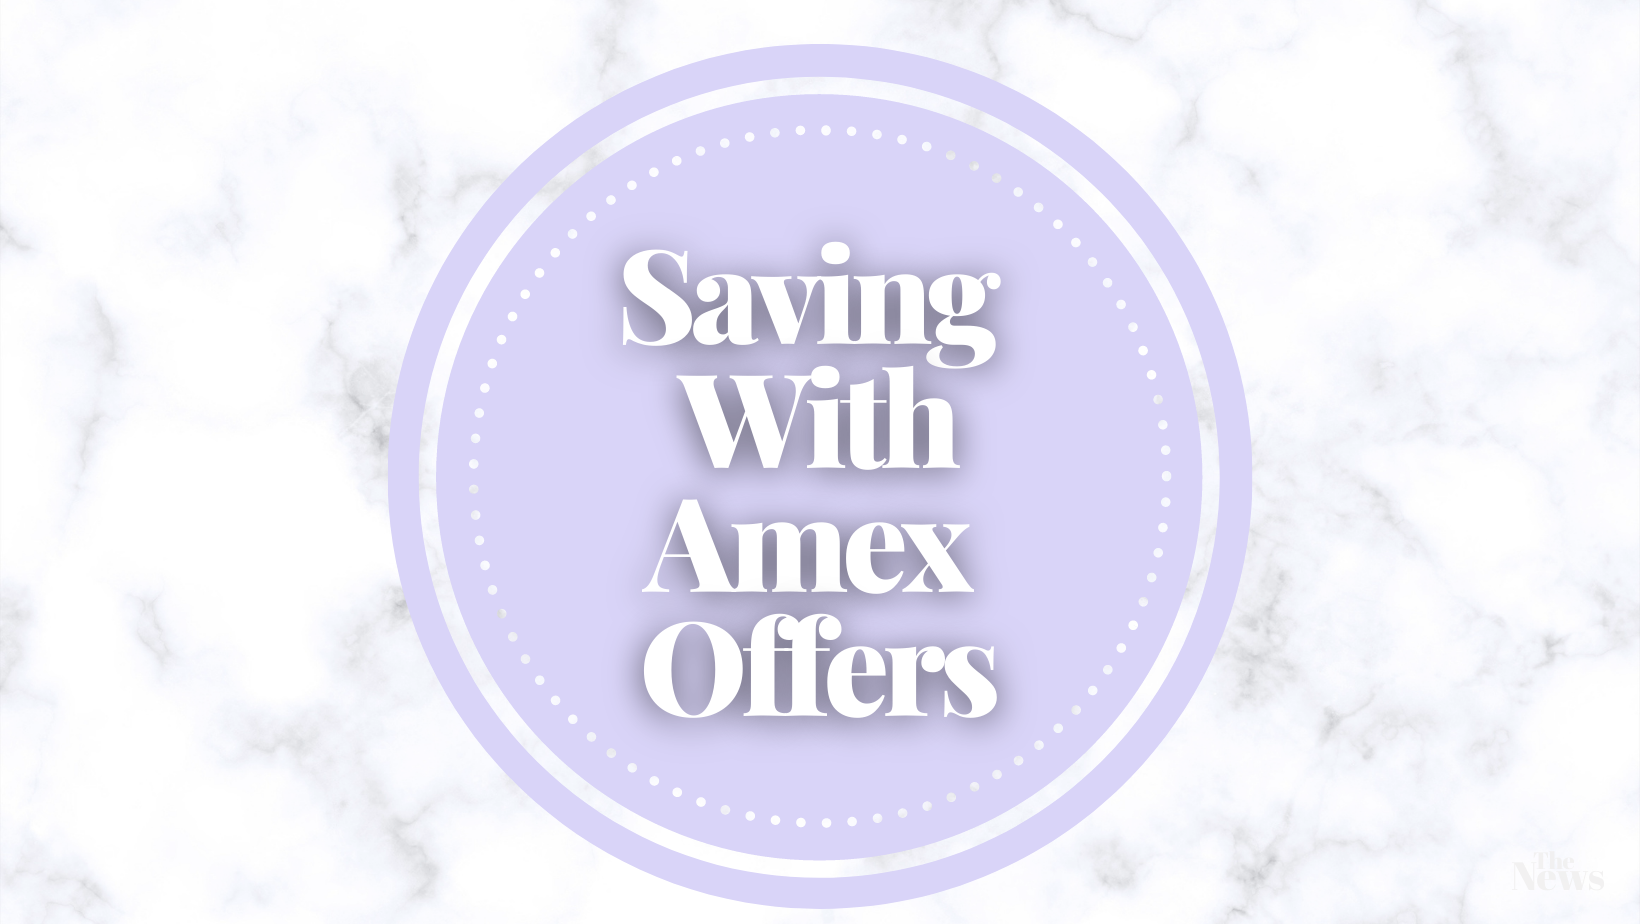 Amex offers featured image